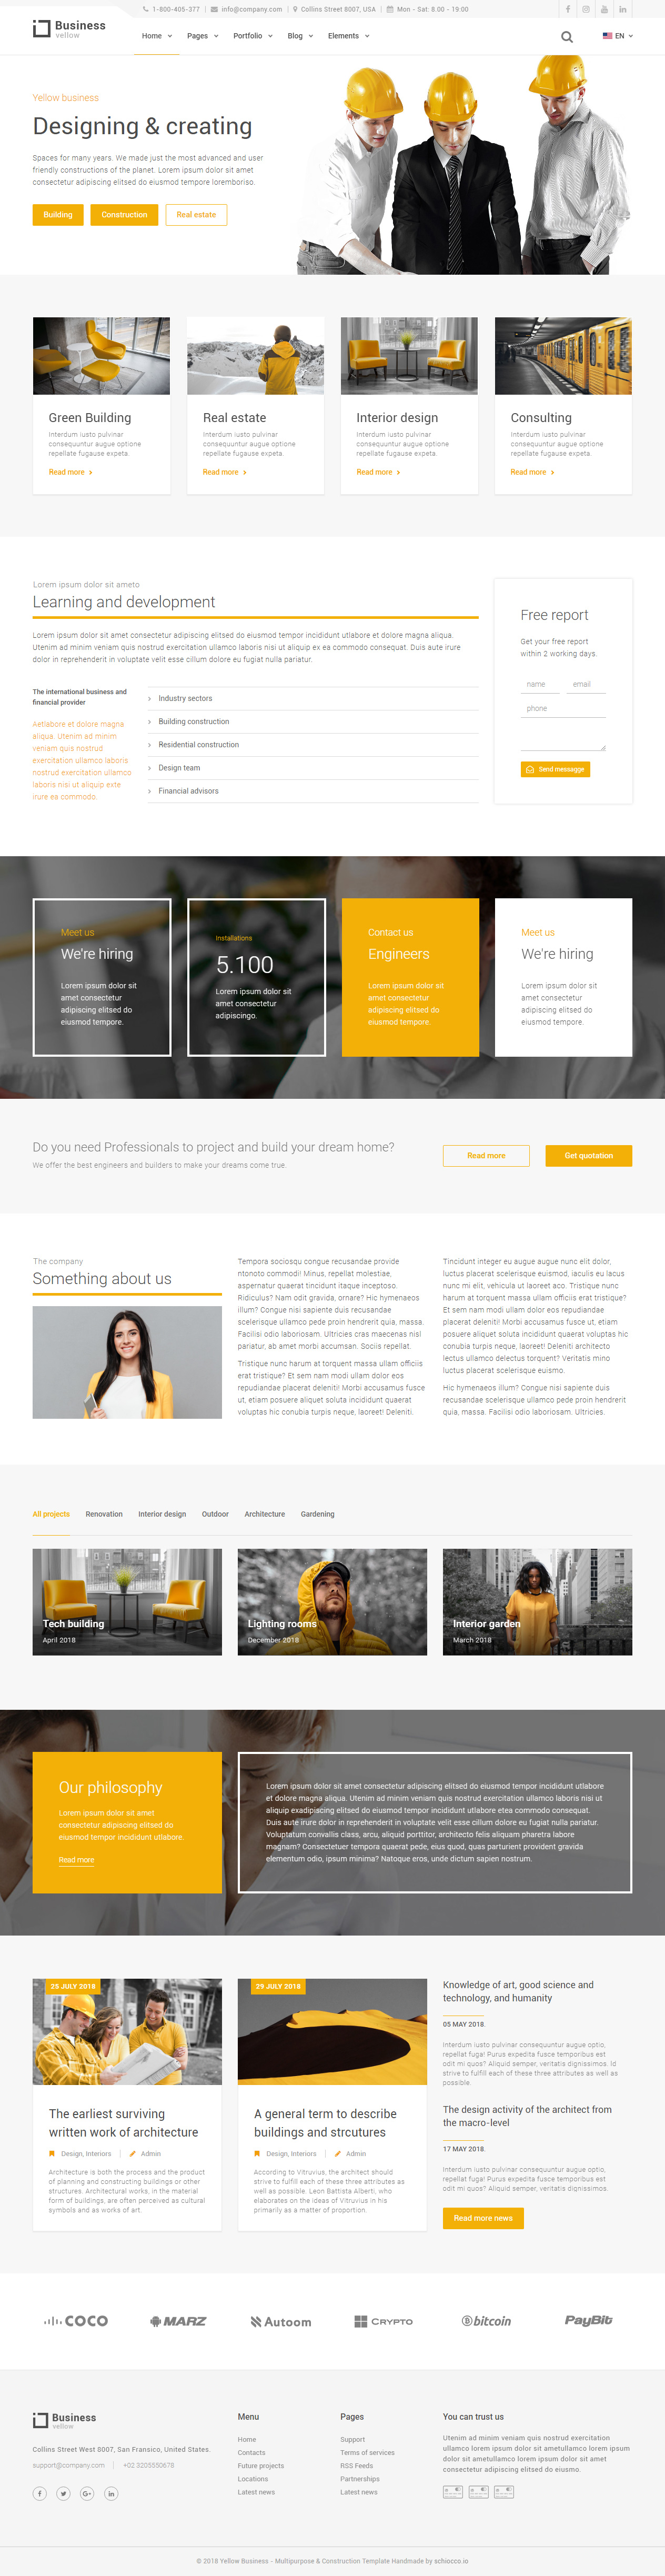 15 best construction company html5 templates 2018 responsive miracle yellow business construction company html5 templates flashek Images